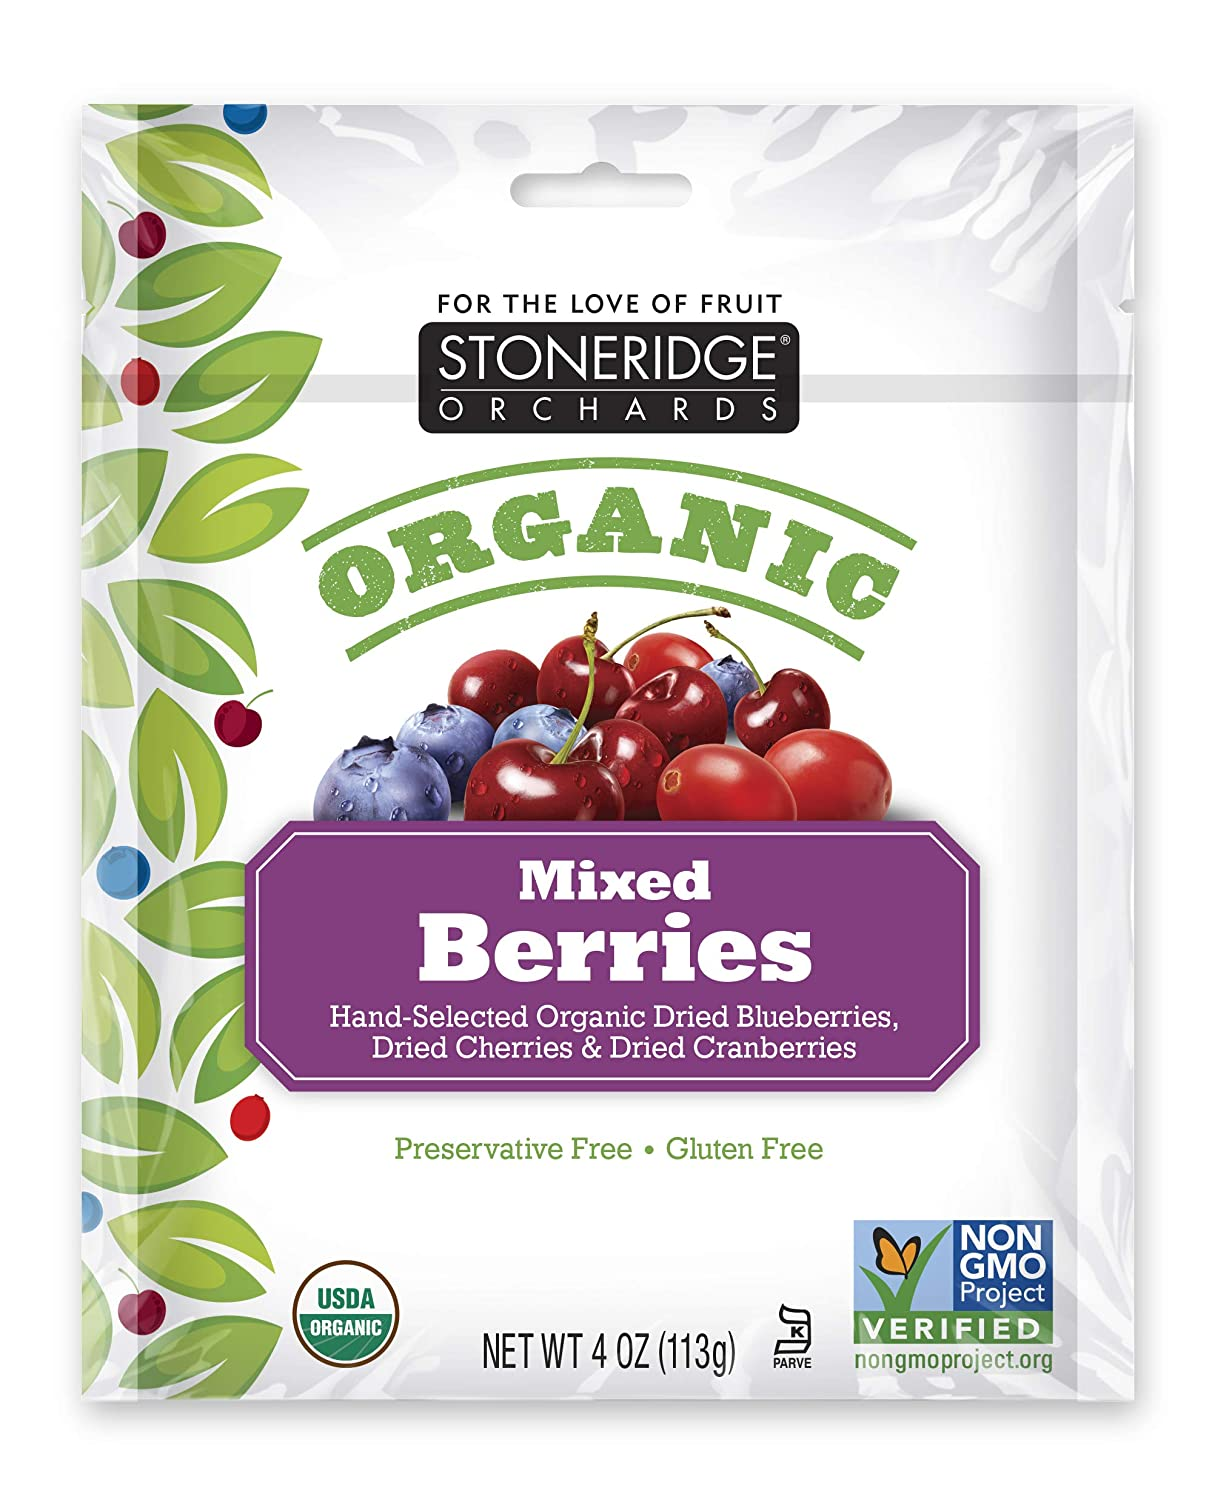 Stoneridge Orchards Organic Berry Mix gift 4 6 55% OFF Drie Pack oz Whole -